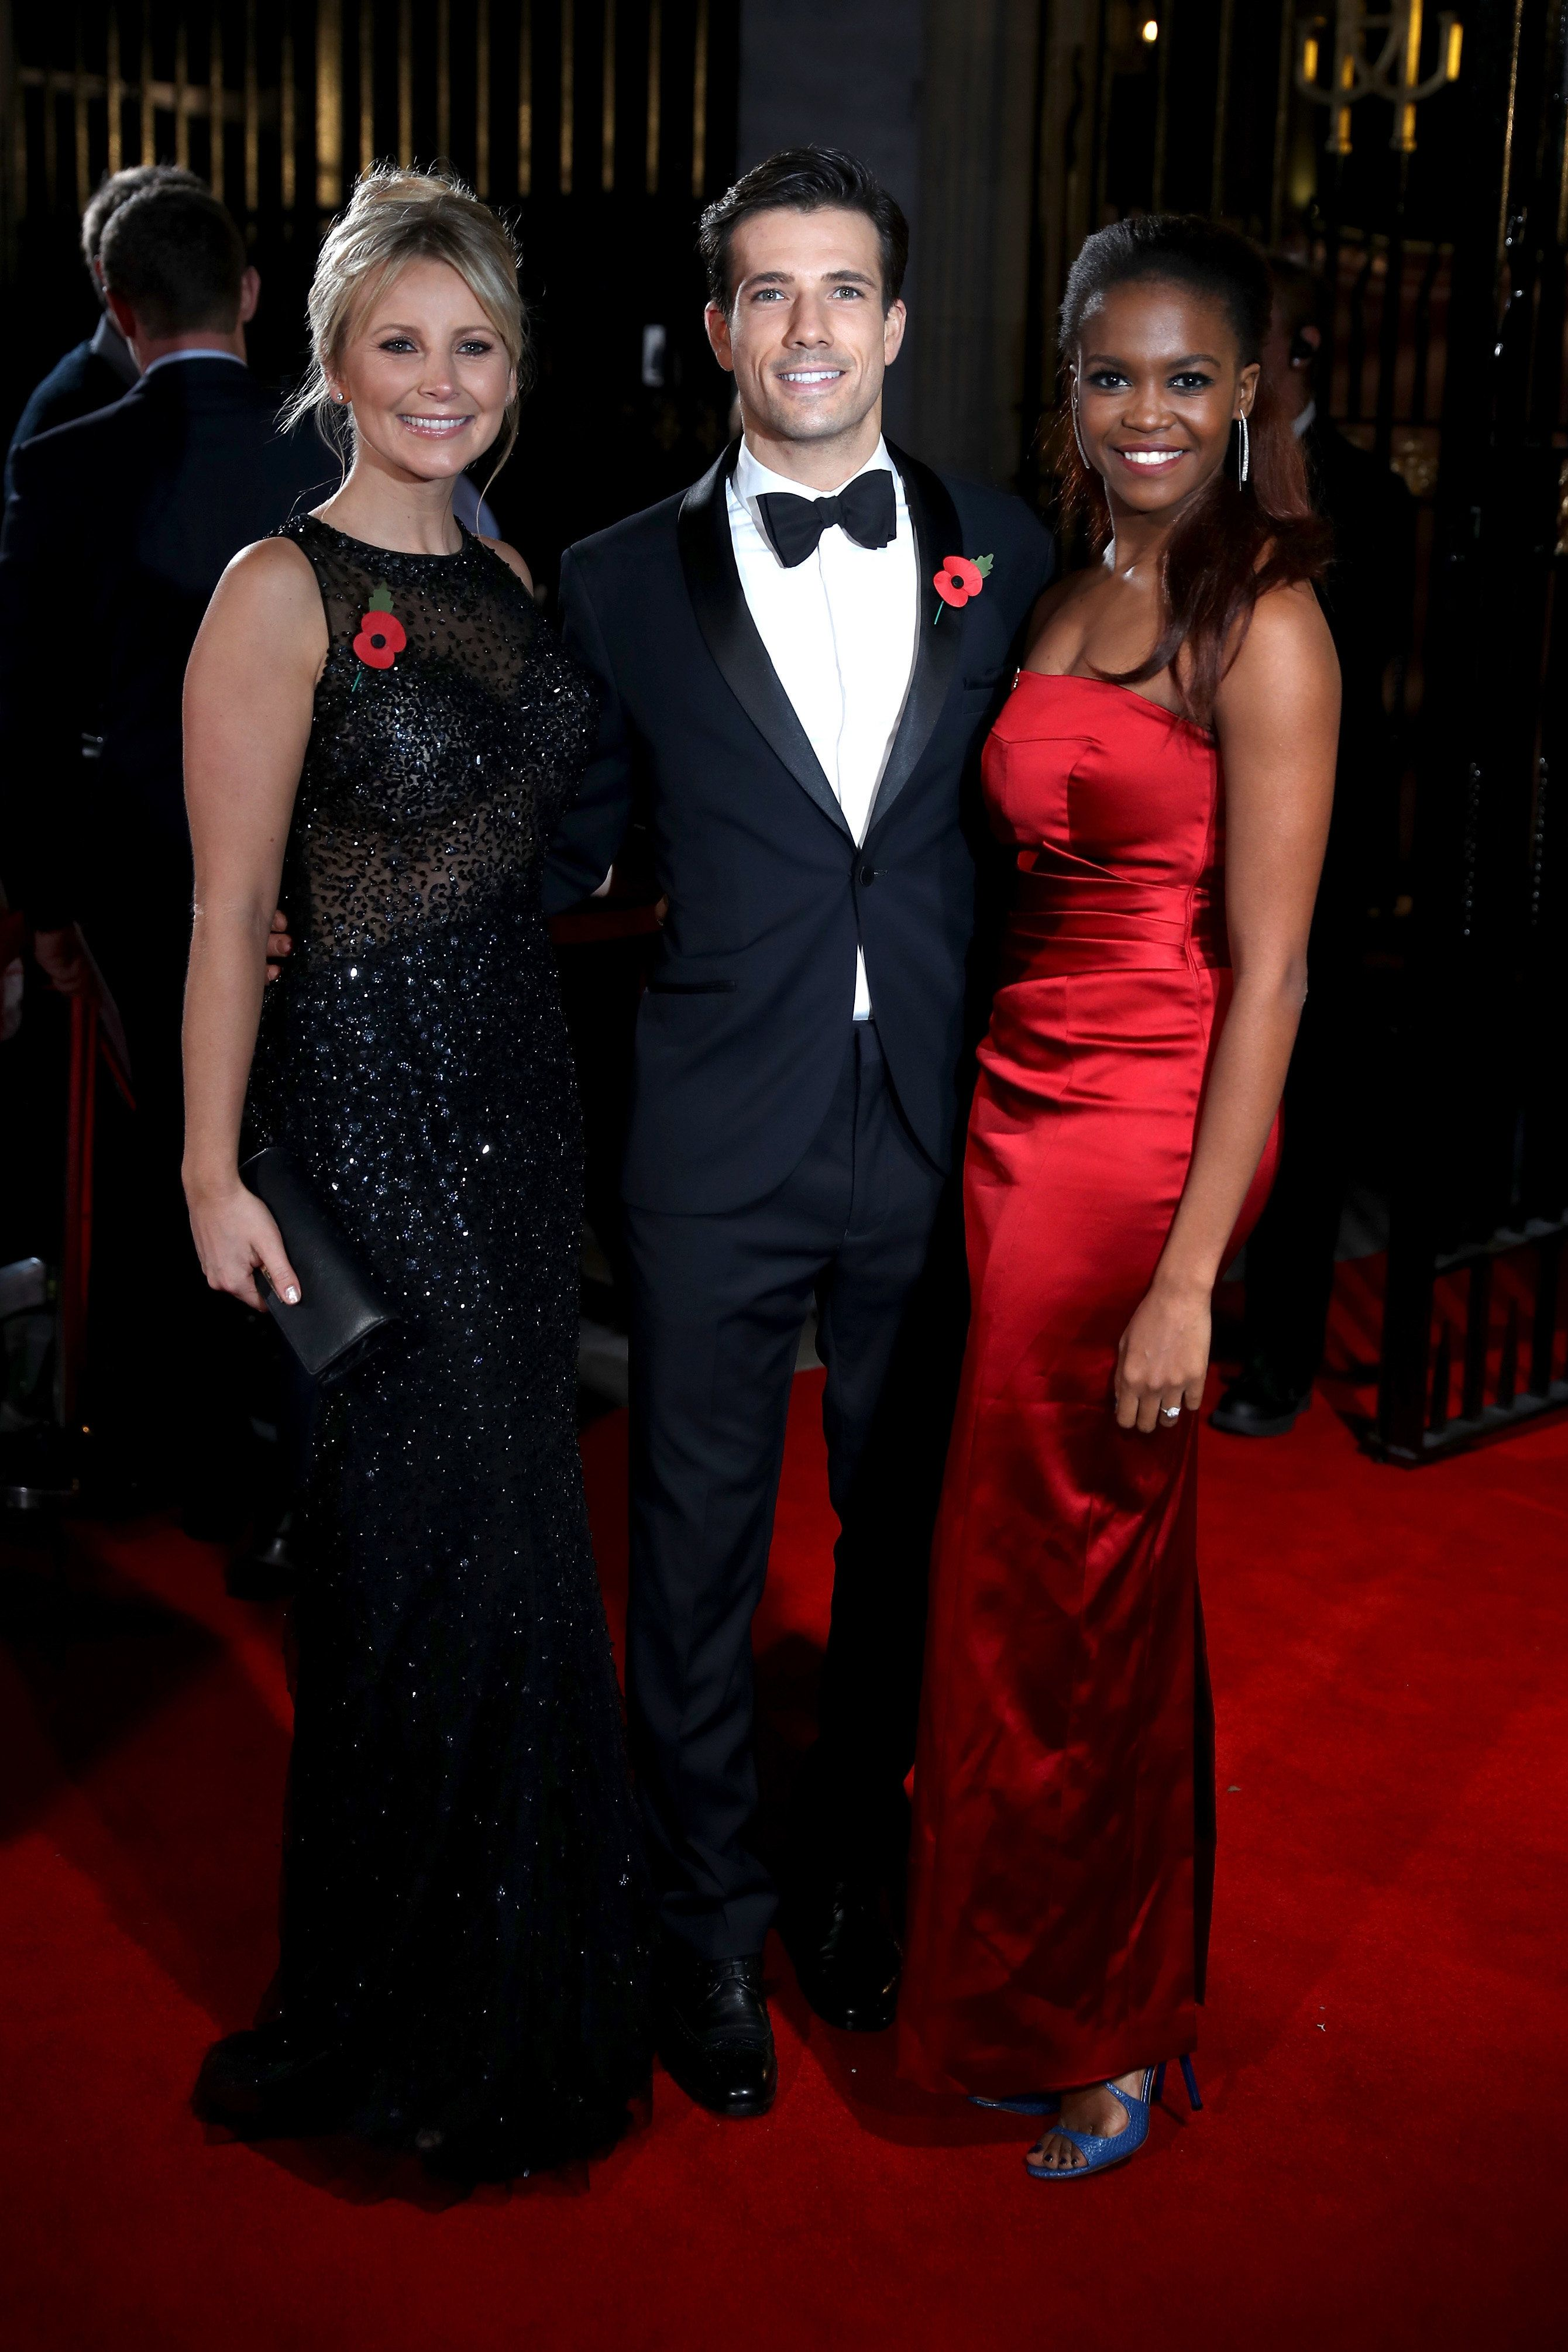 Danny Mac with his fiancée actress Carley Stenson (left) and Oti